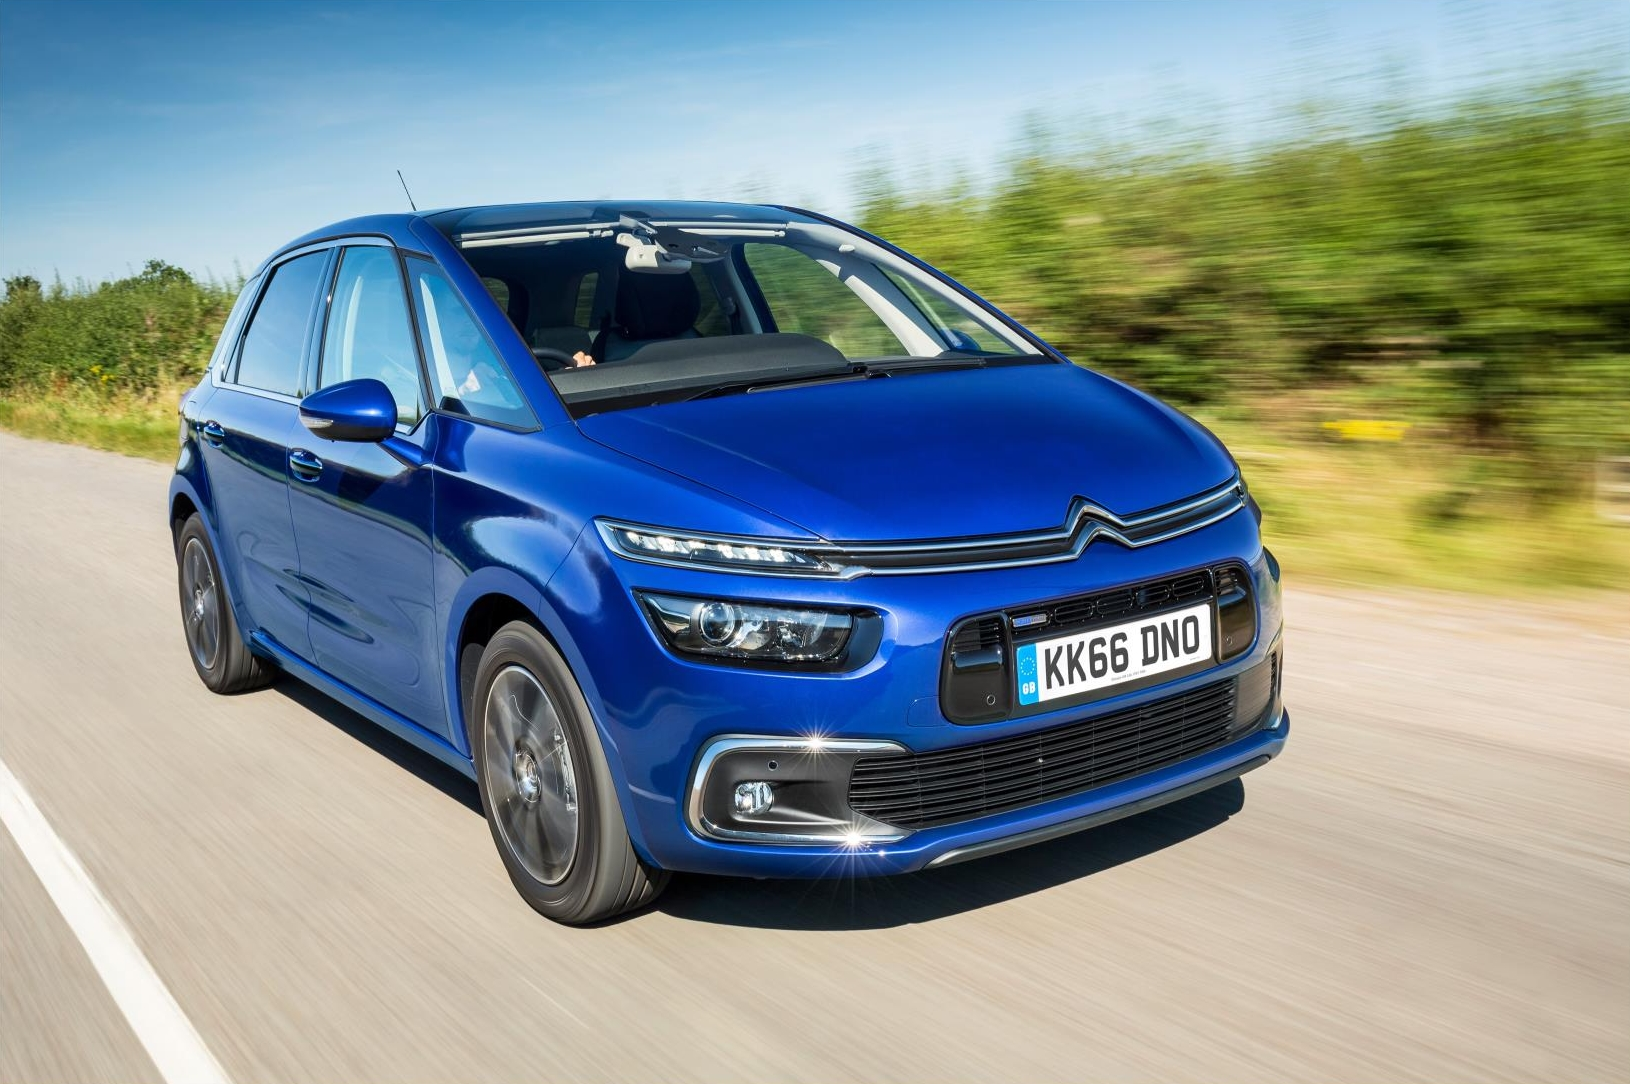 The C4 Picasso might not be the sharpest MPV through the bends, but David thinks it's all the better for it